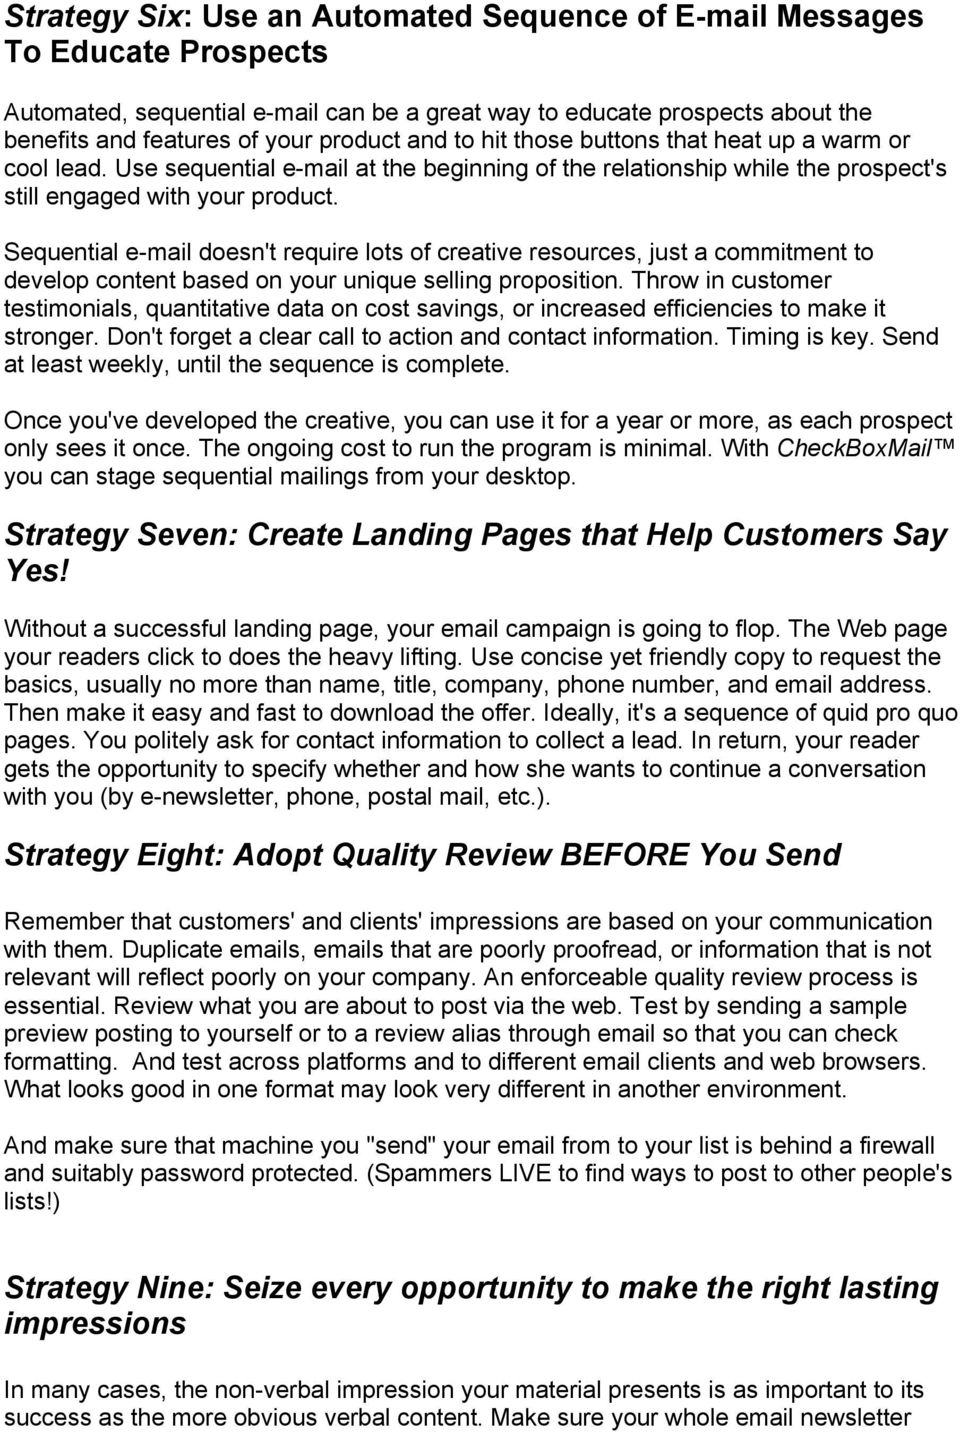 Sequential e-mail doesn't require lots of creative resources, just a commitment to develop content based on your unique selling proposition.